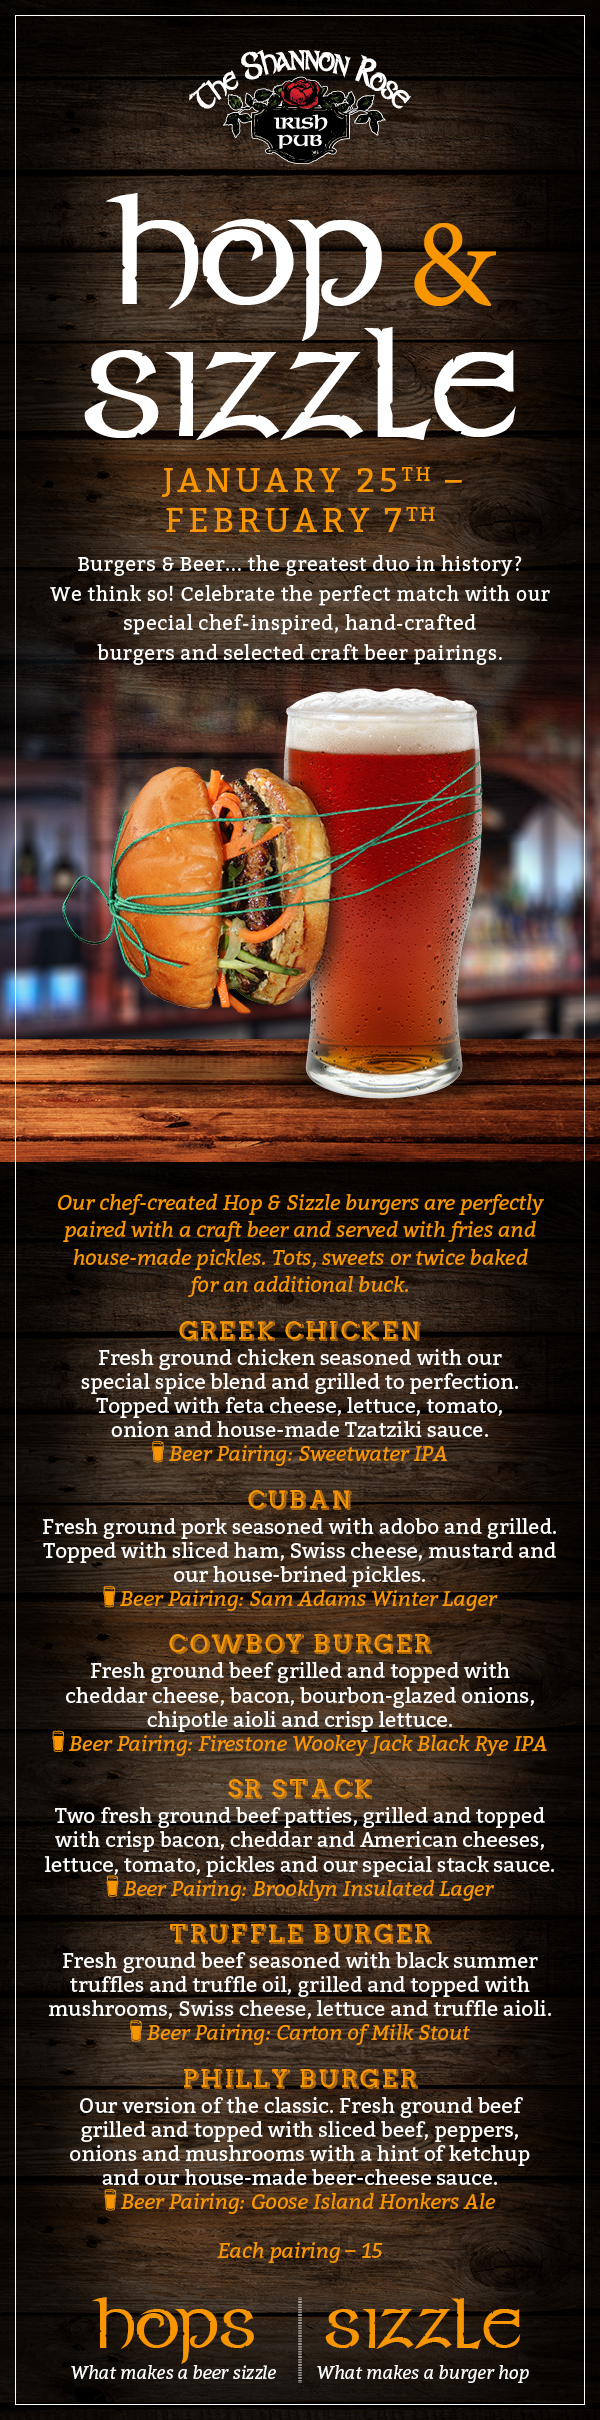 new hop and sizzle menu at shannon rose irish pub new jersey isn